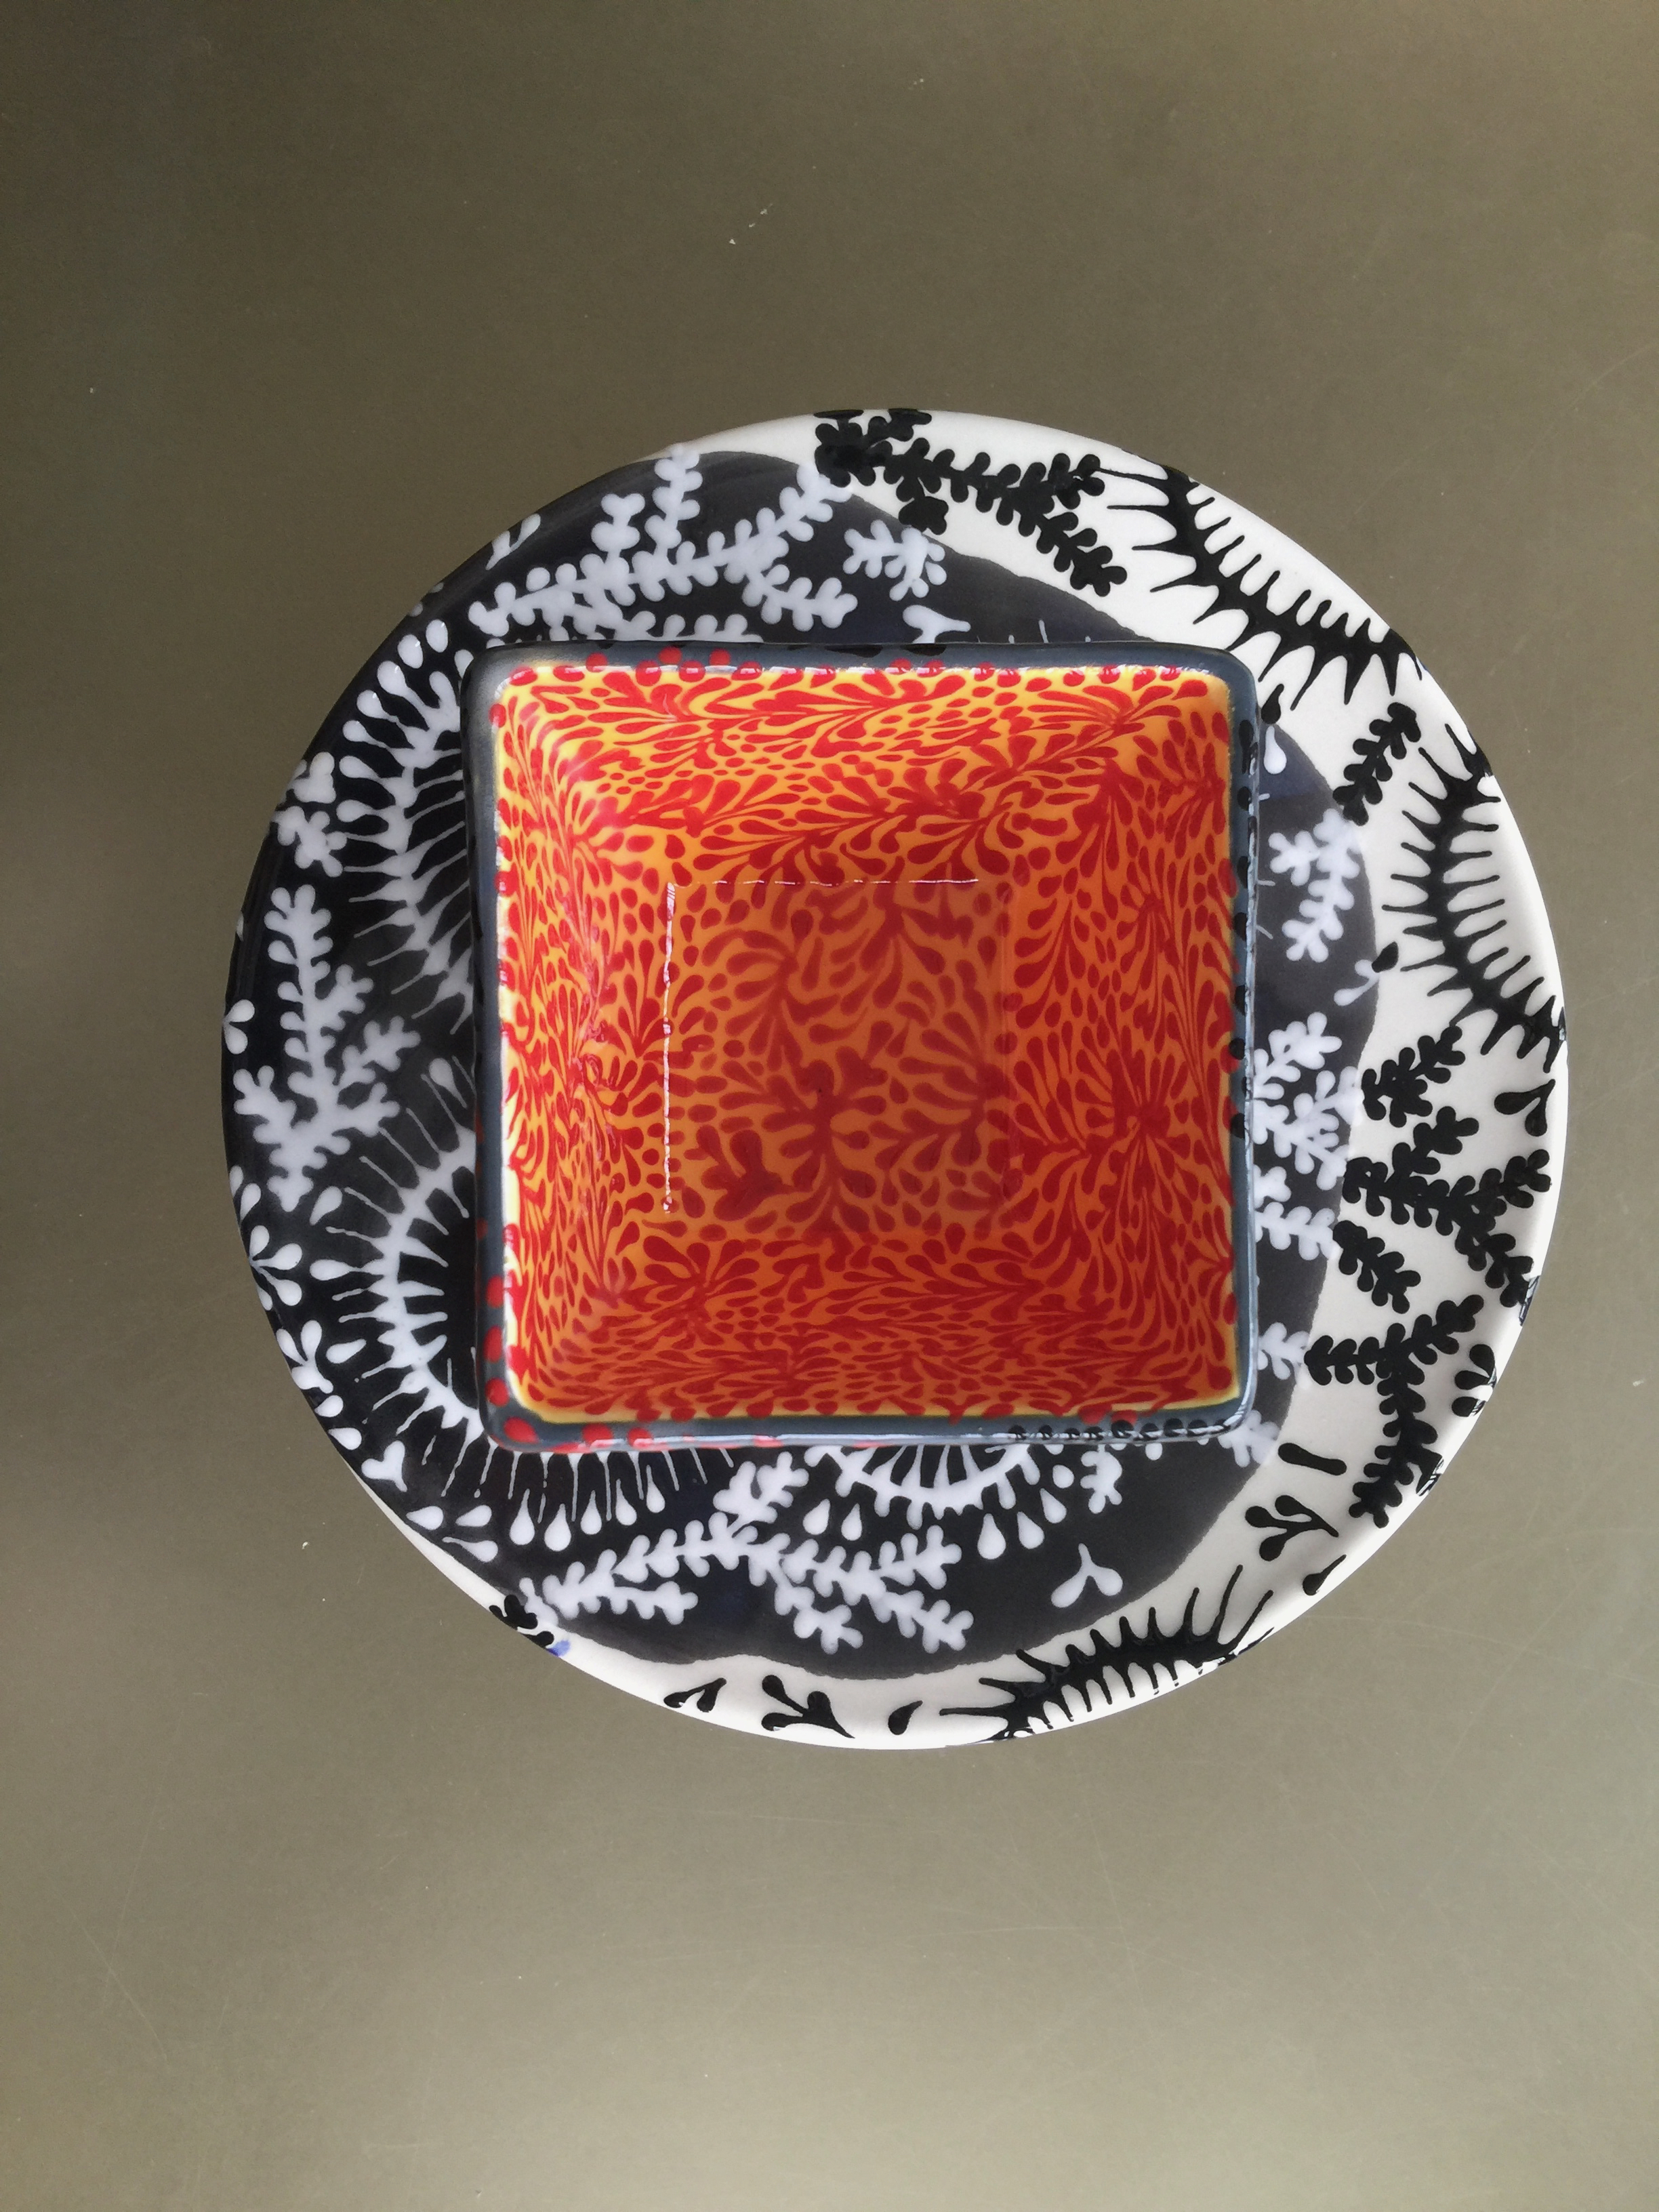 TWIGGY AND SPIKE BURST SALAD PLATE WITH MOSS PATTERN SQUARE BOWL